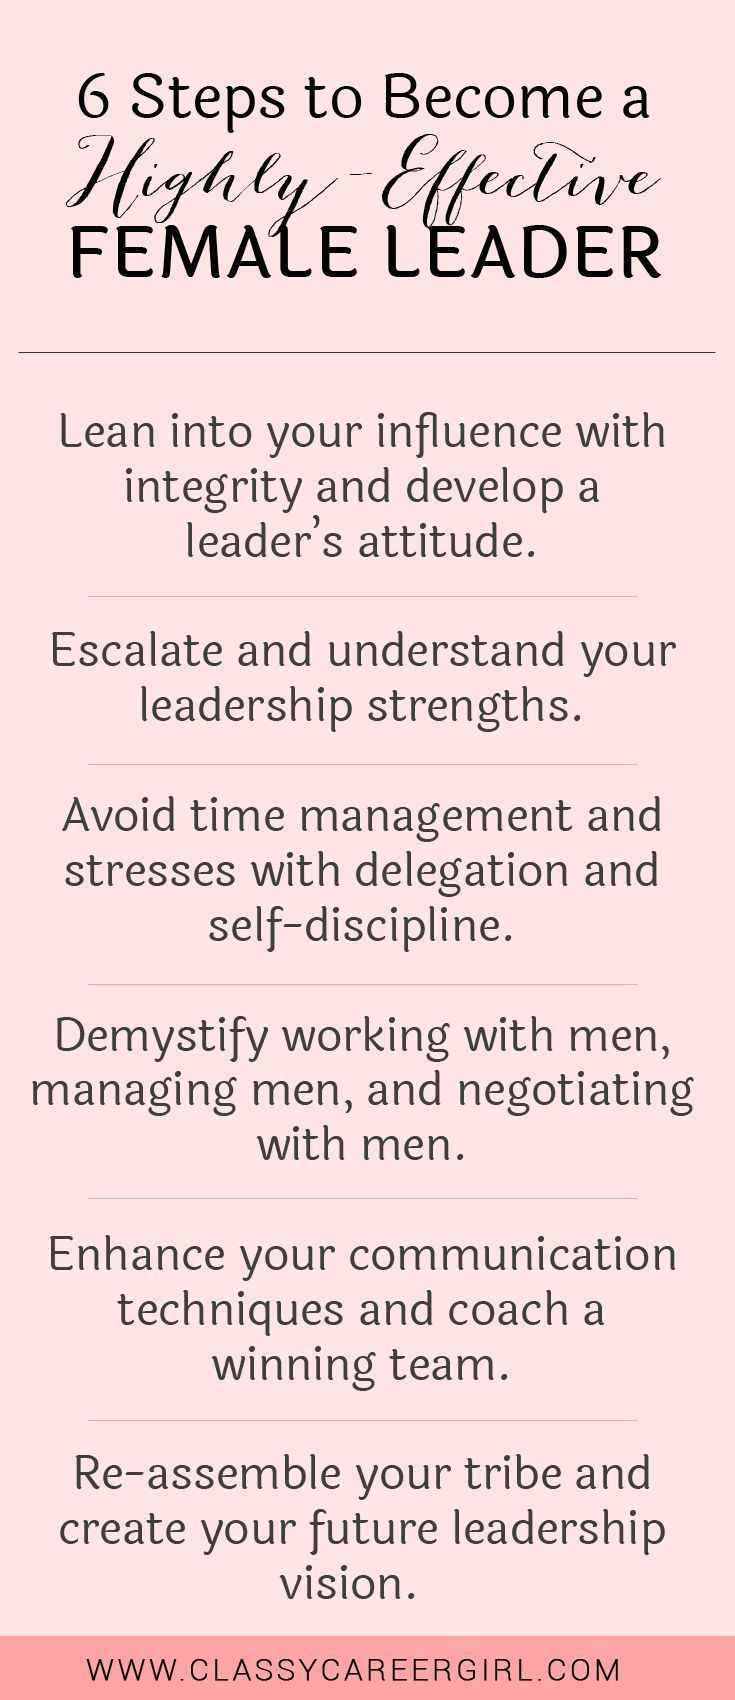 6 Steps to Become an Effective Female LEADER